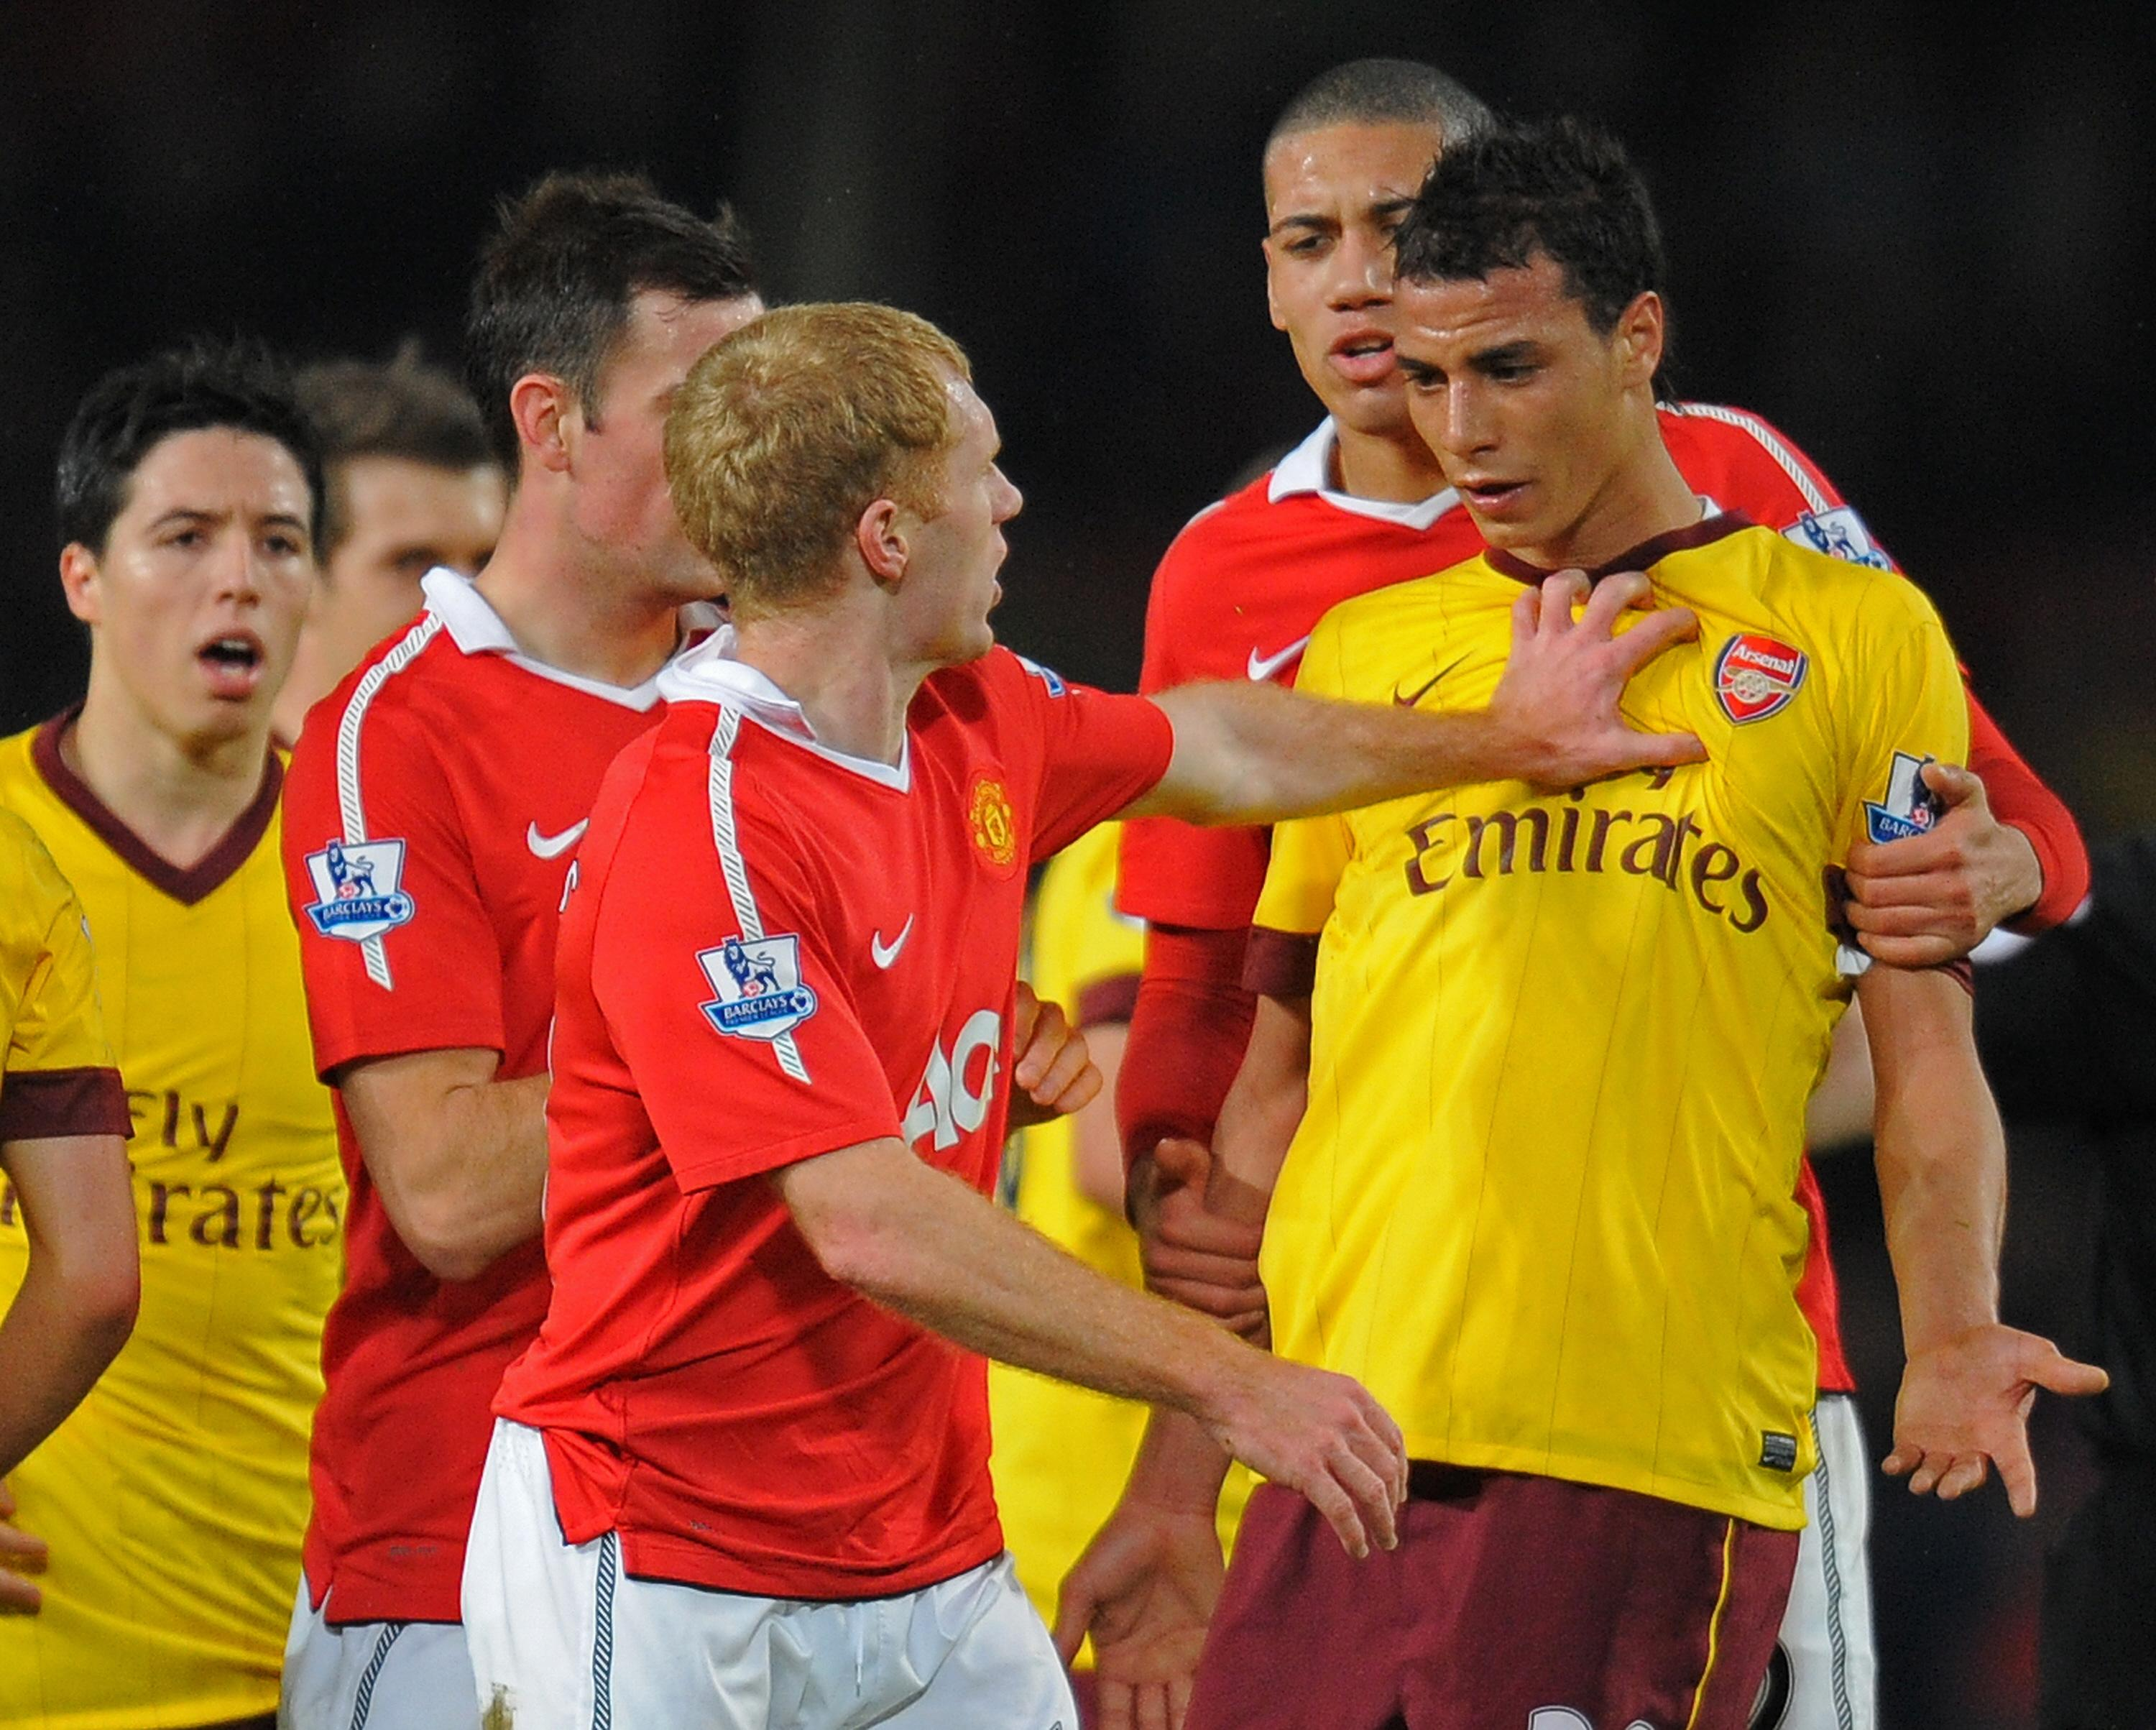 Paul Scholes came off the bench in the 2-0 FA Cup victory